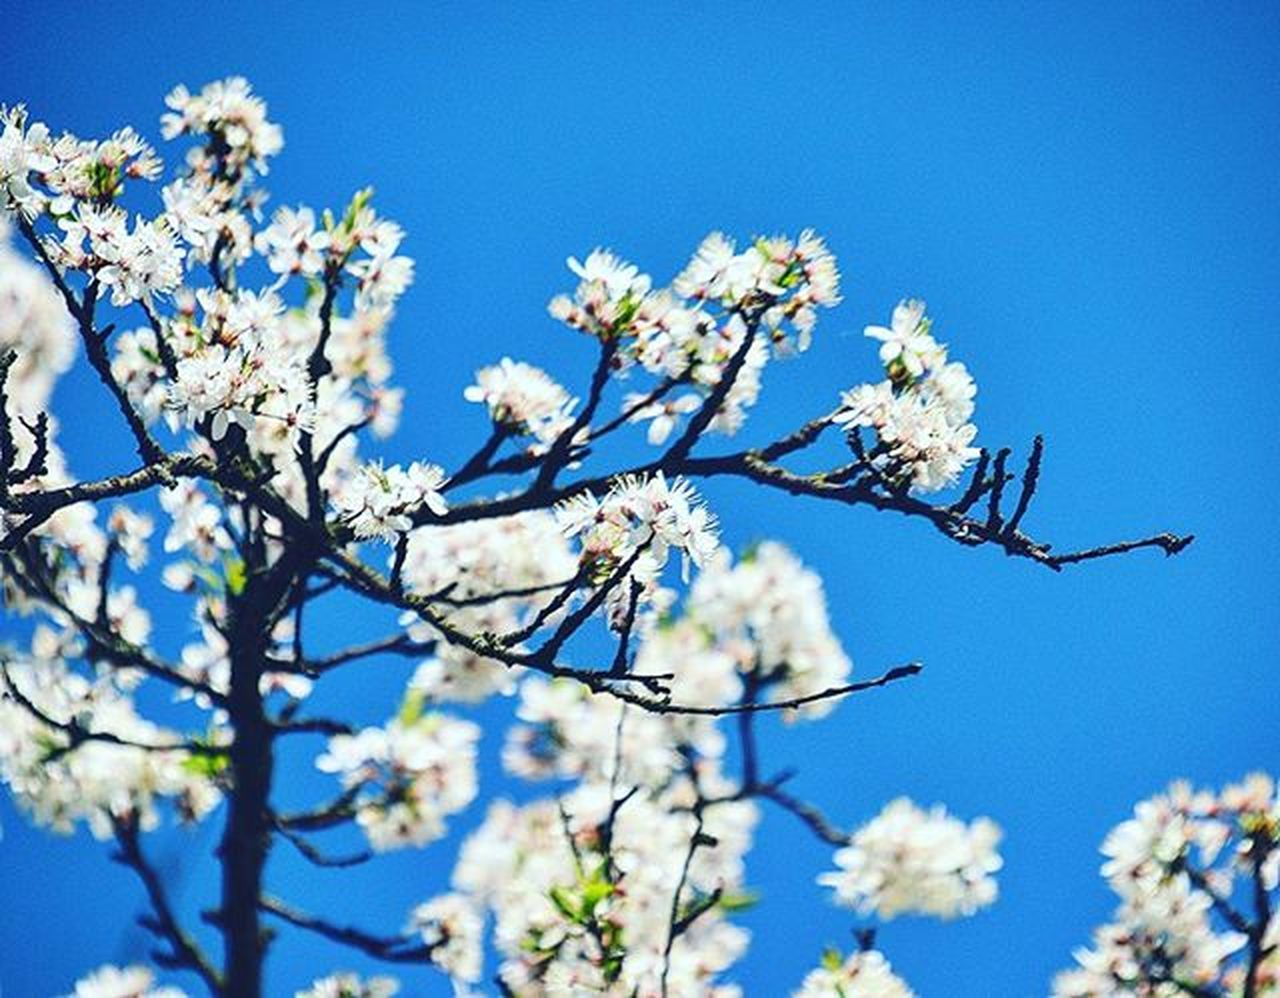 flower, fragility, blossom, springtime, beauty in nature, growth, freshness, nature, tree, branch, apple blossom, low angle view, clear sky, botany, twig, apple tree, day, blue, no people, white color, outdoors, petal, sky, close-up, flower head, blooming